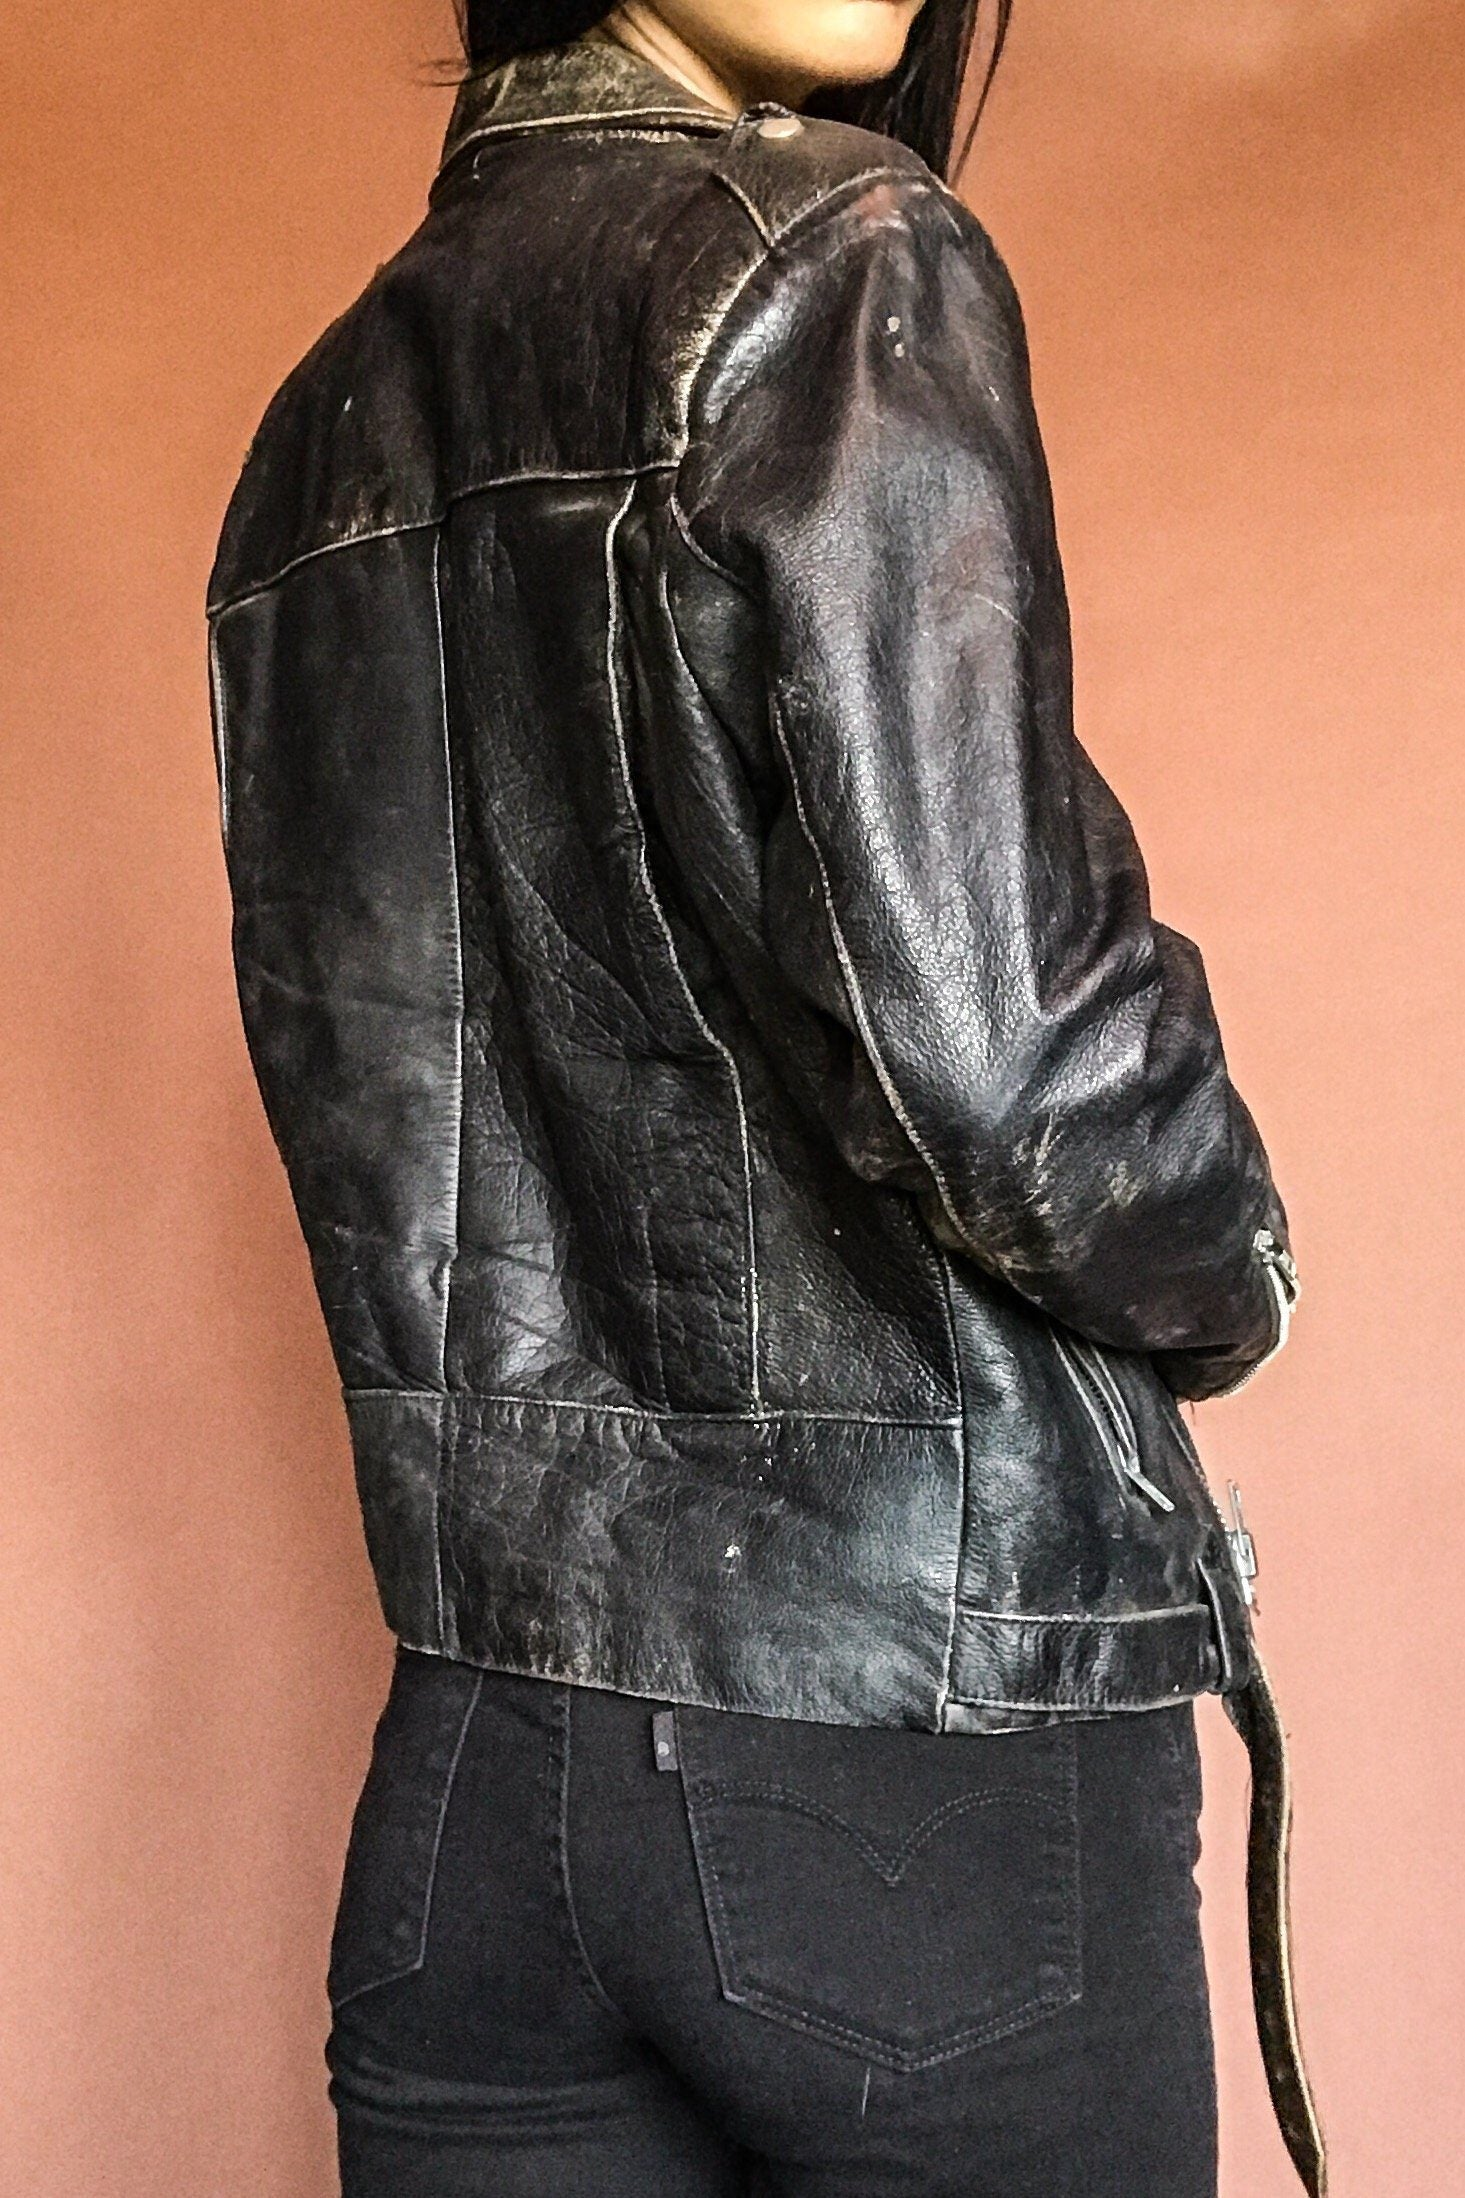 Ideal Beautifully Broken-In Vintage Black Leather Jacket #2 (W/ Red Lining)